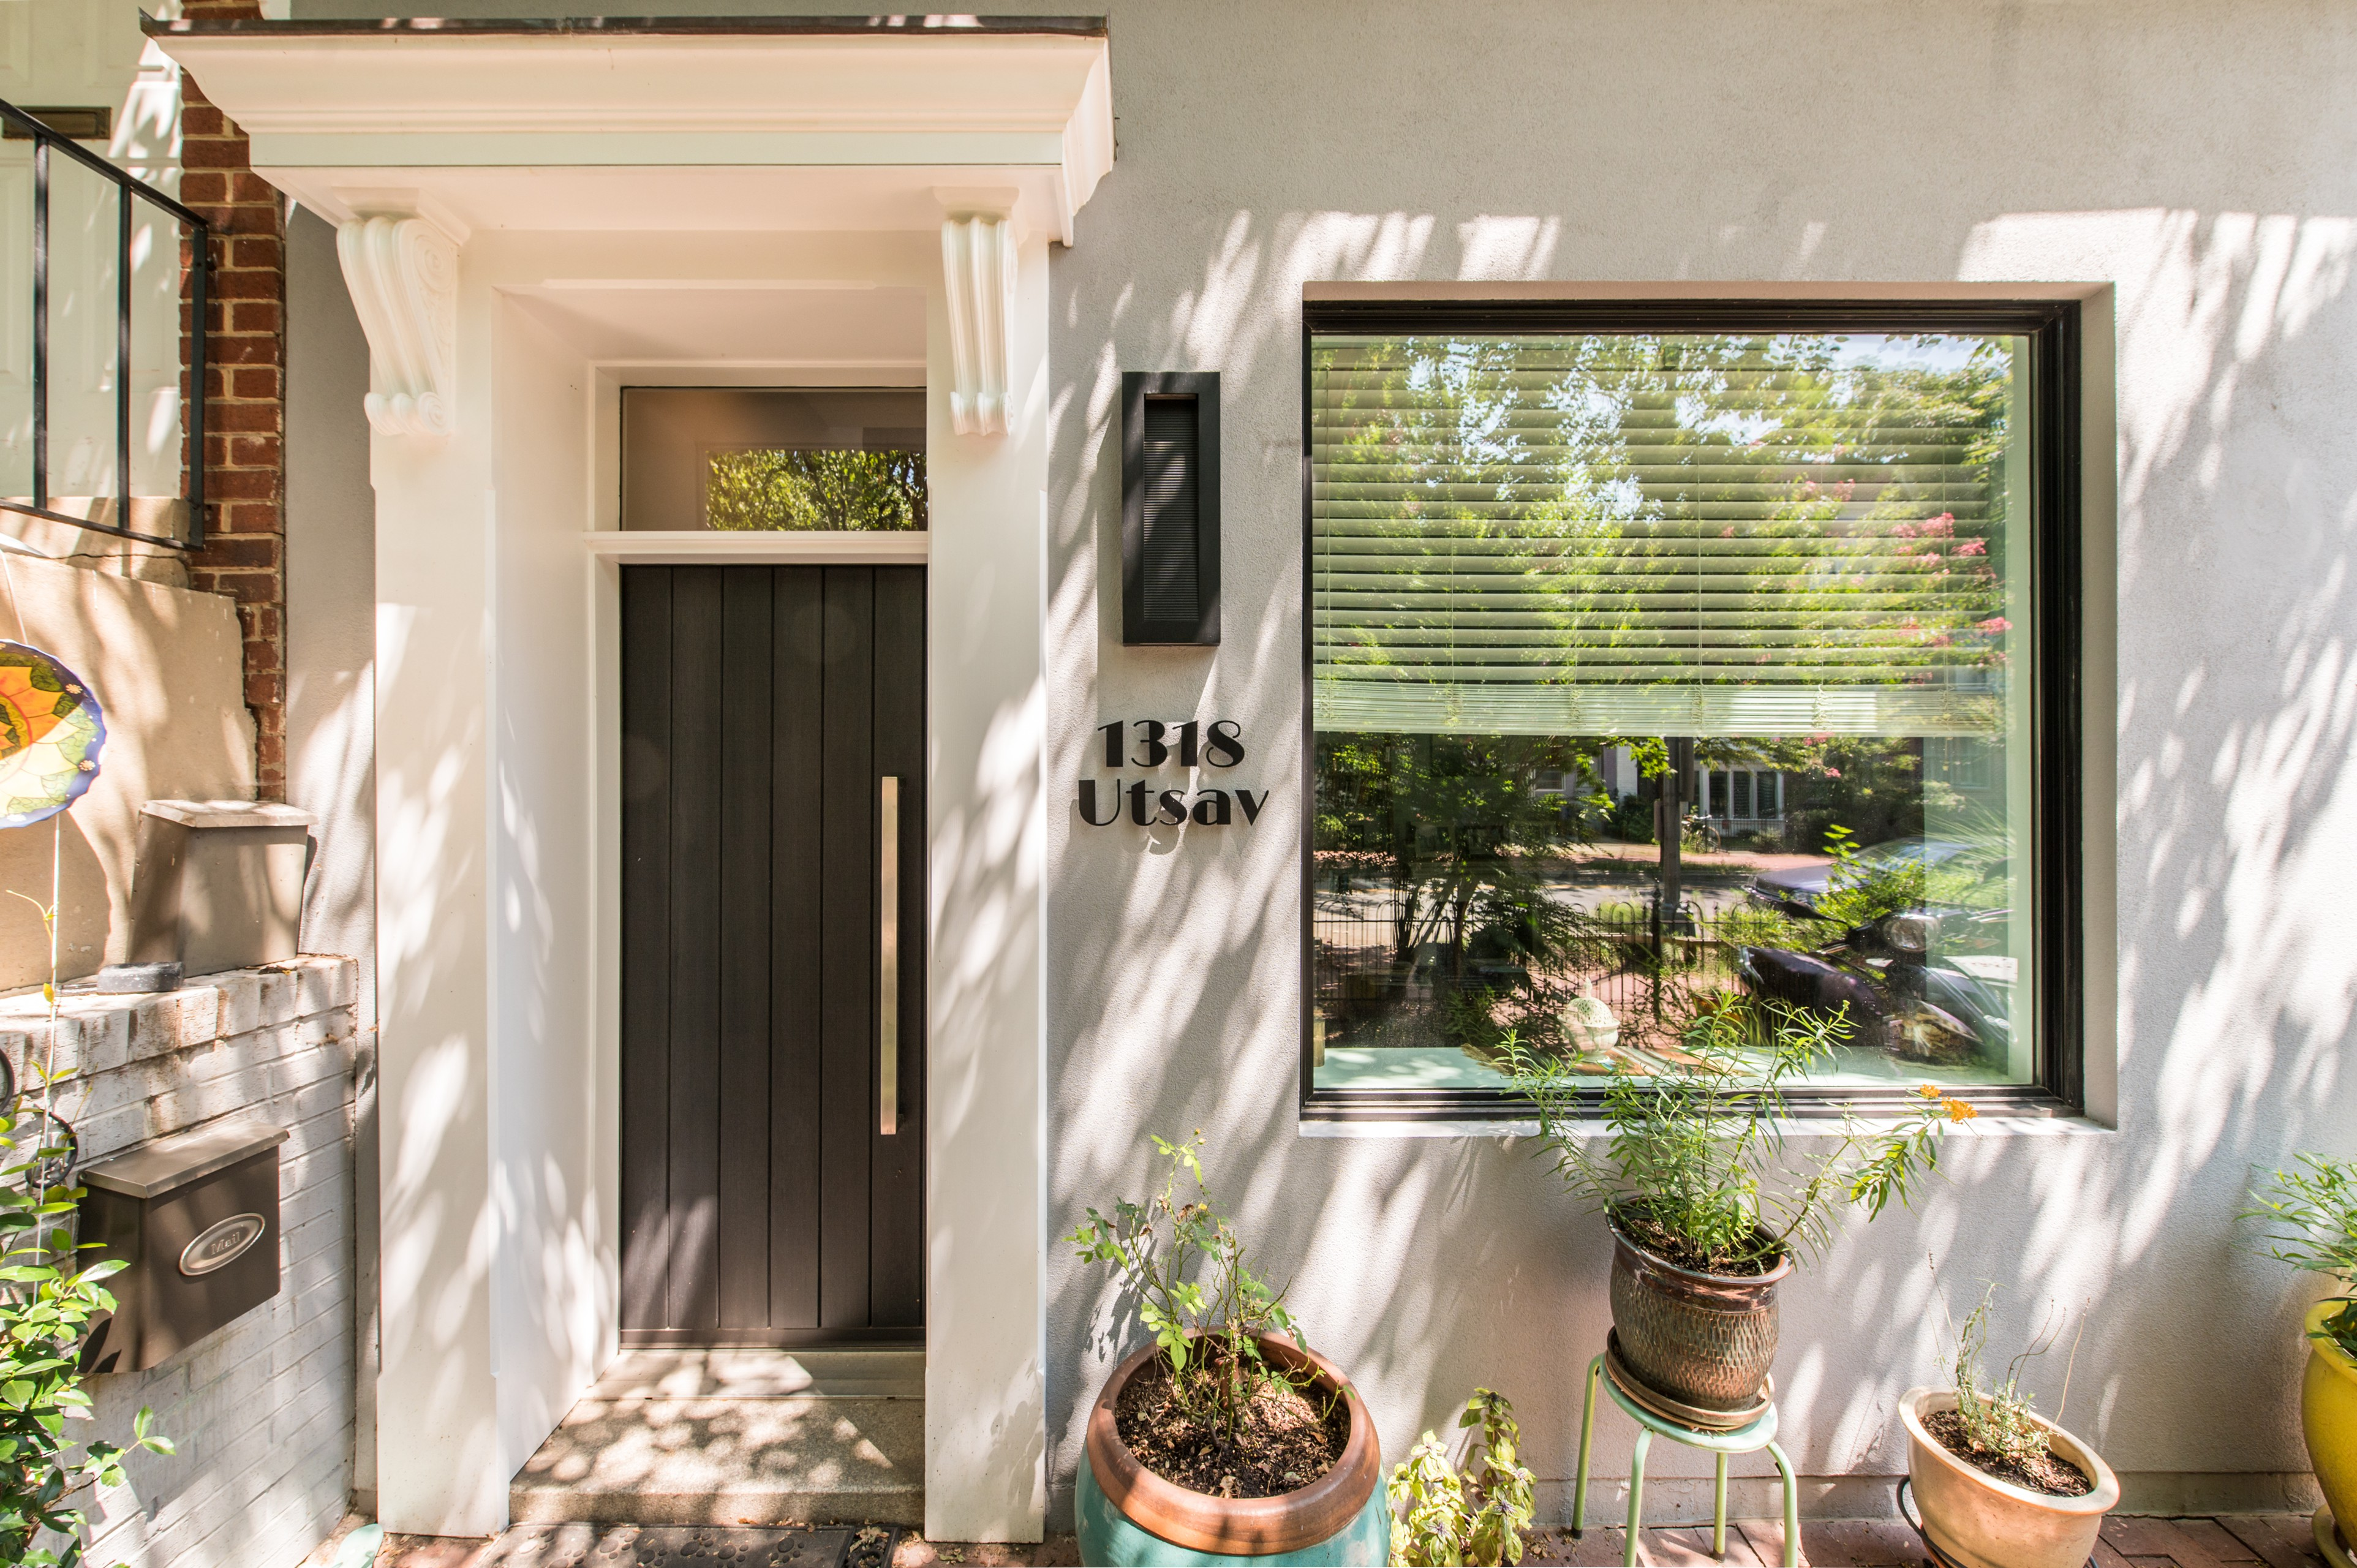 Washington, DC Eclectic Remodel & Addition